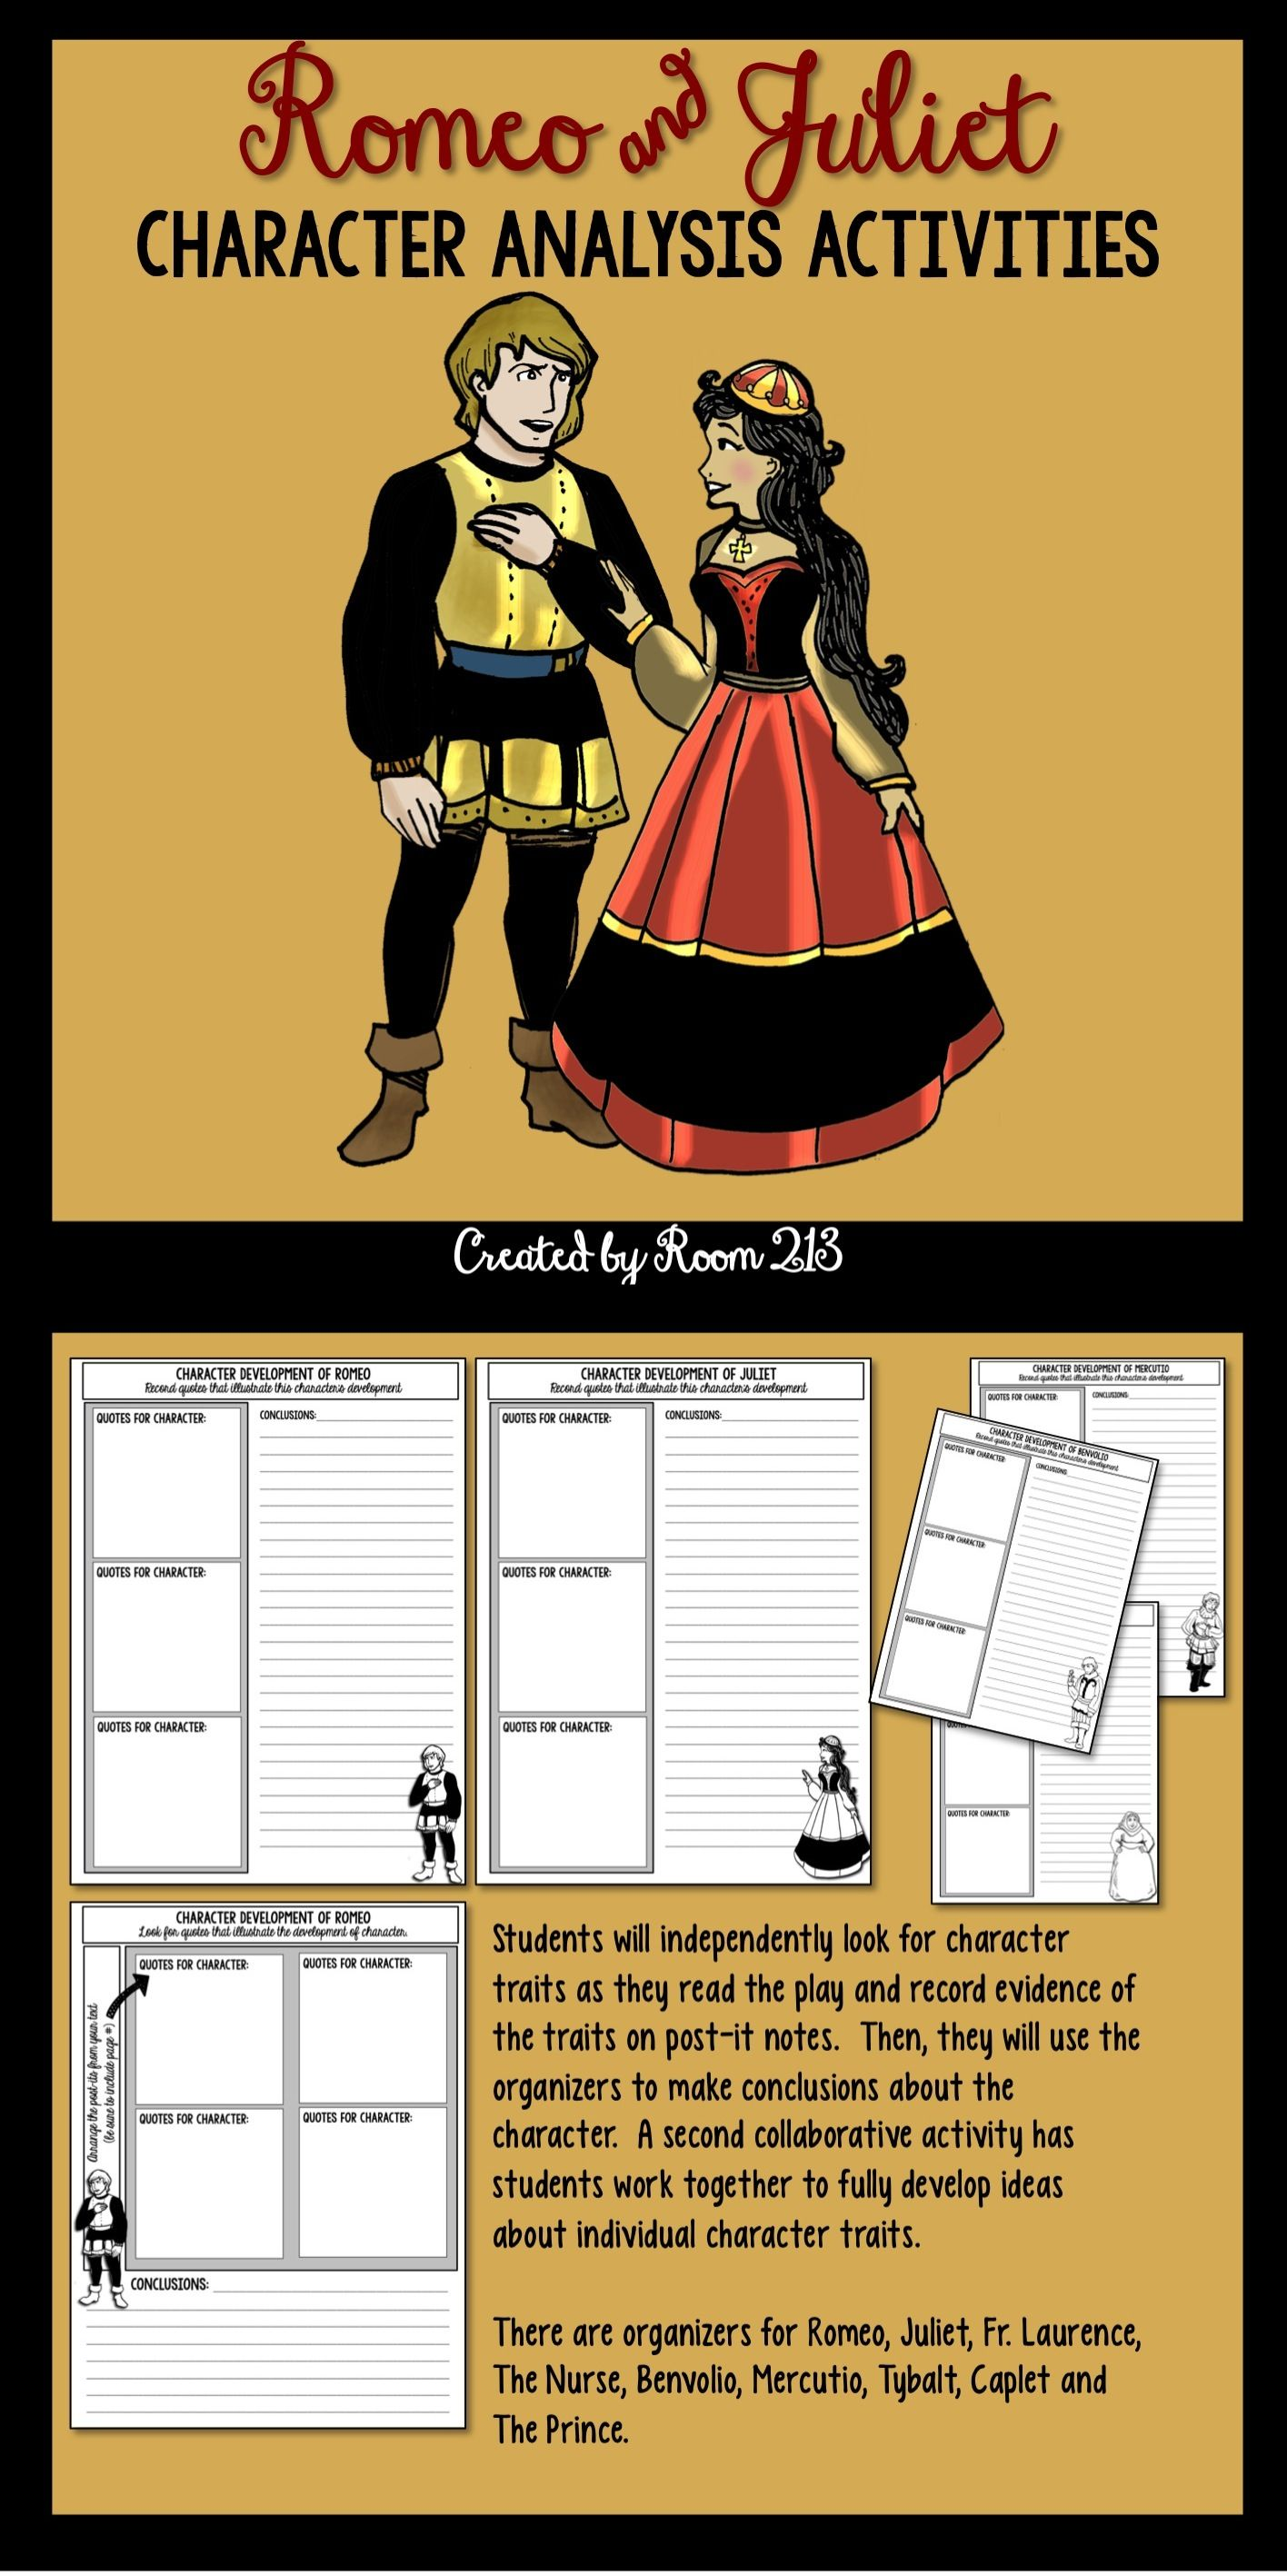 romeo and juliet character analysis activities student graphic romeo juliet graphic organizers to help your students analyze character